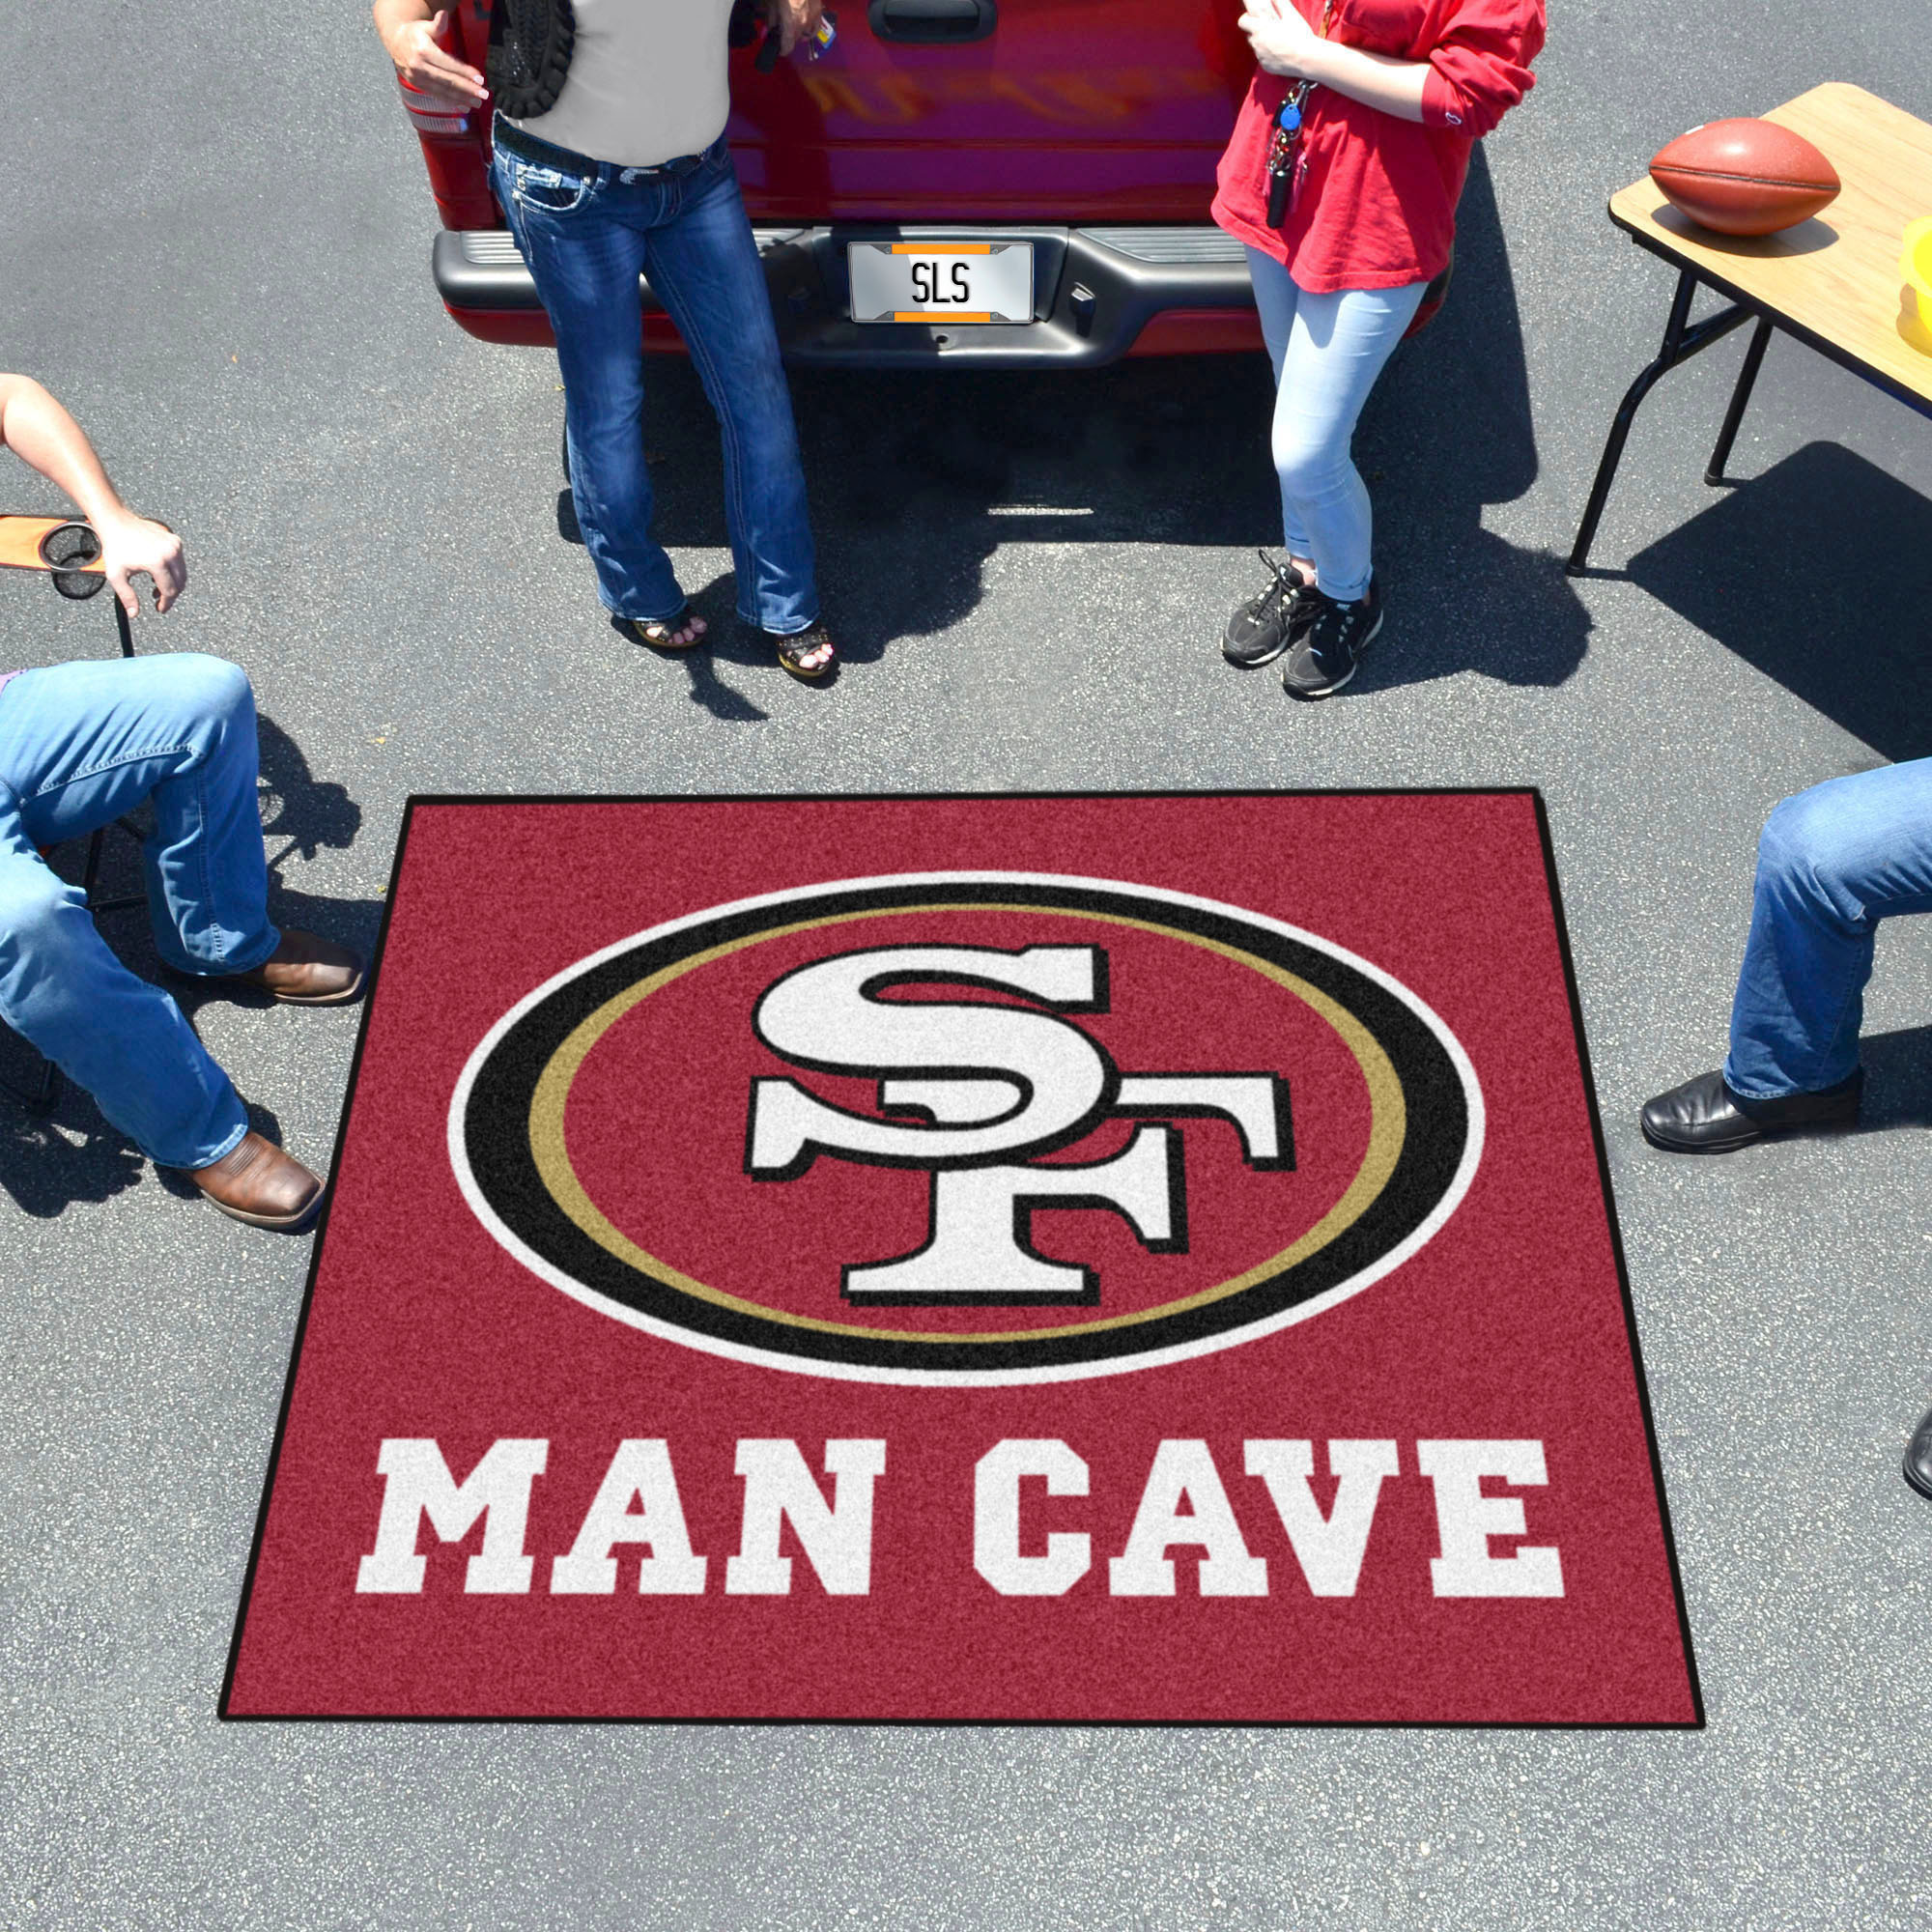 San Francisco 49ers MAN CAVE TAILGATER 60 x 72 Rug